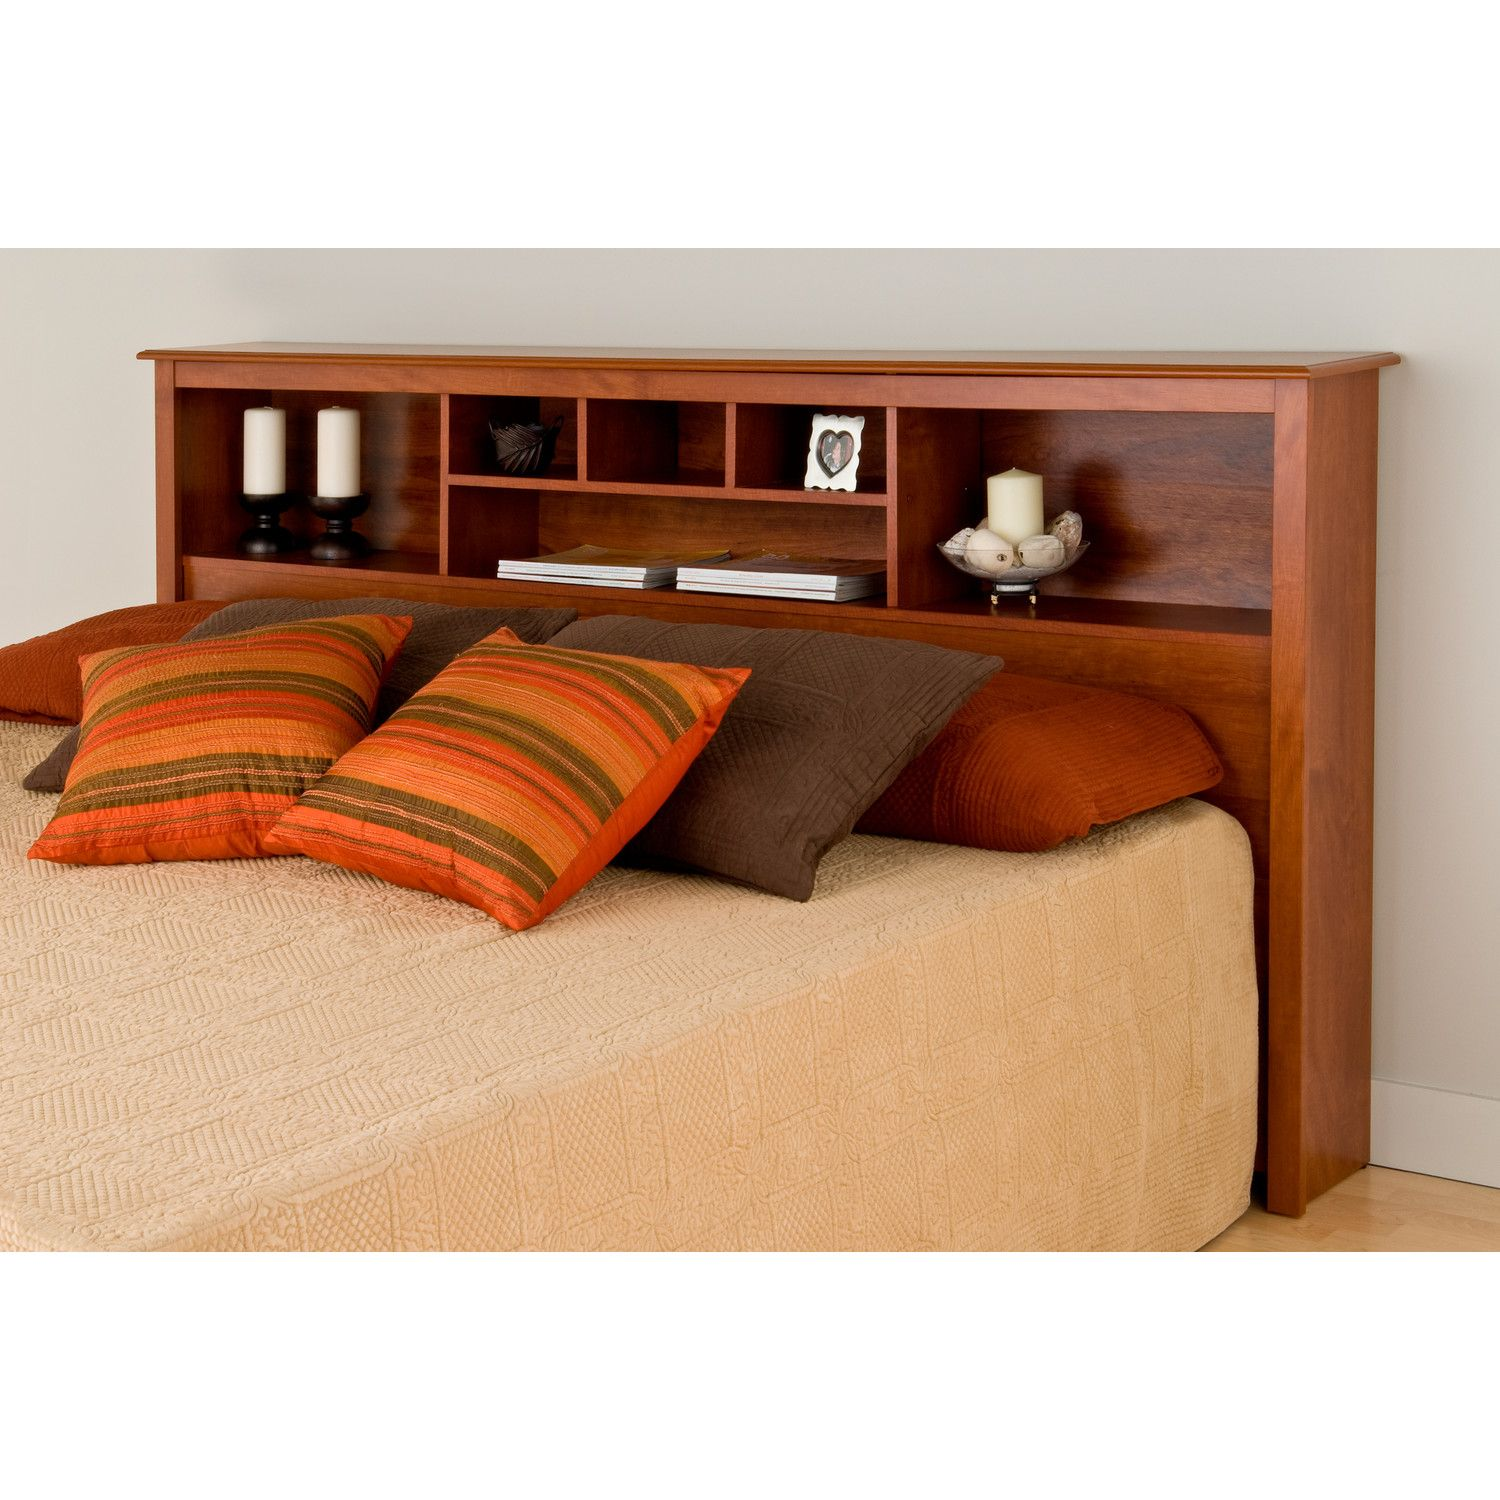 frame photos prepossessing full with backyard wood small olivos for los bathroom charming set bed photo at platform size headboard headboards bookcase beds bookshelf and gallery room trend